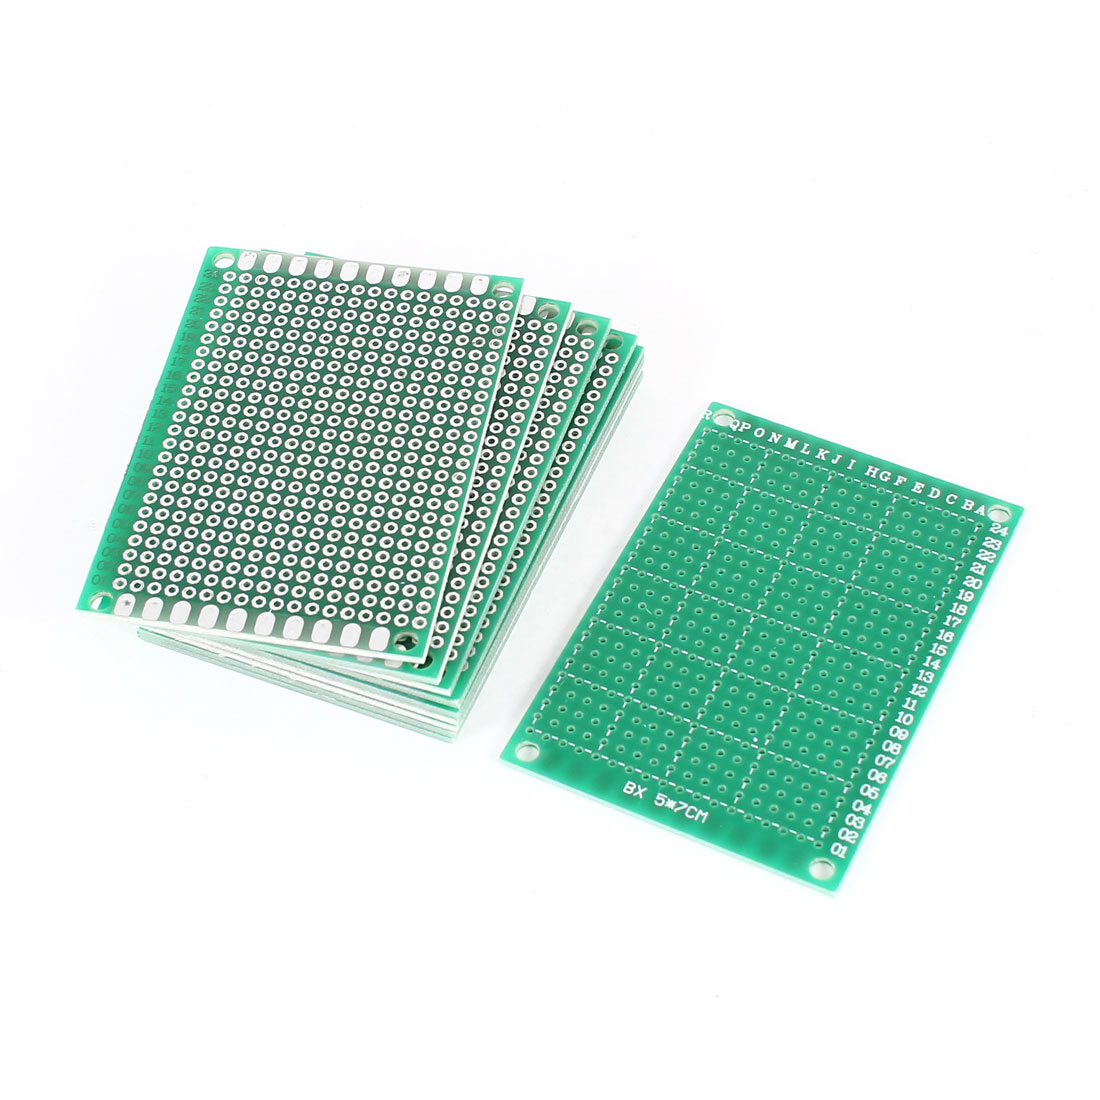 10PCS 5cm x 7cm One Sided Prototype Paper Tinned Universal PCB Print Circuit Board